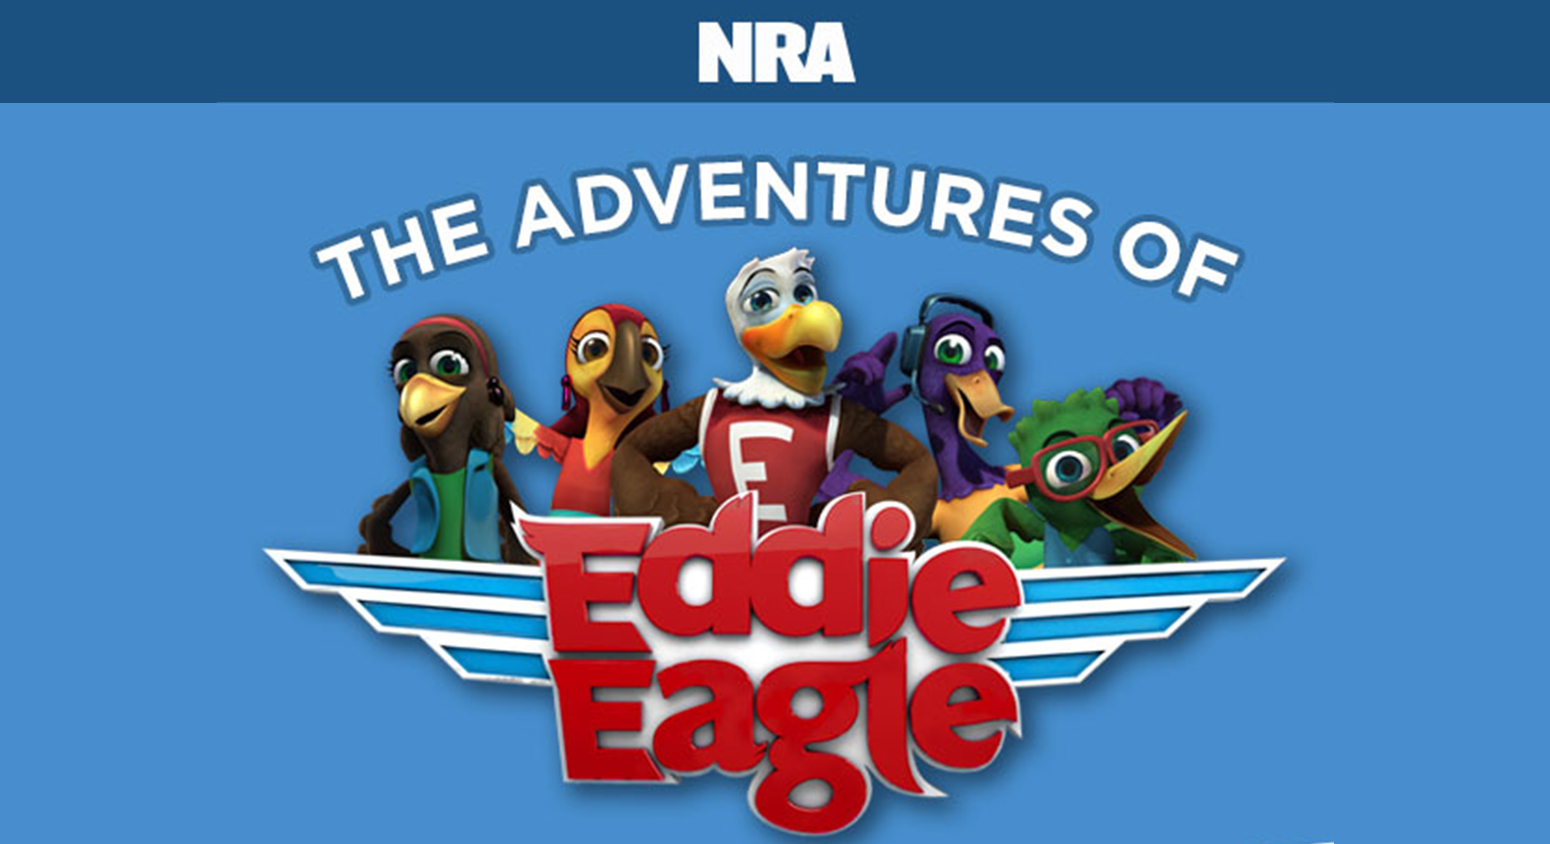 The Adventures of Eddie Eagle